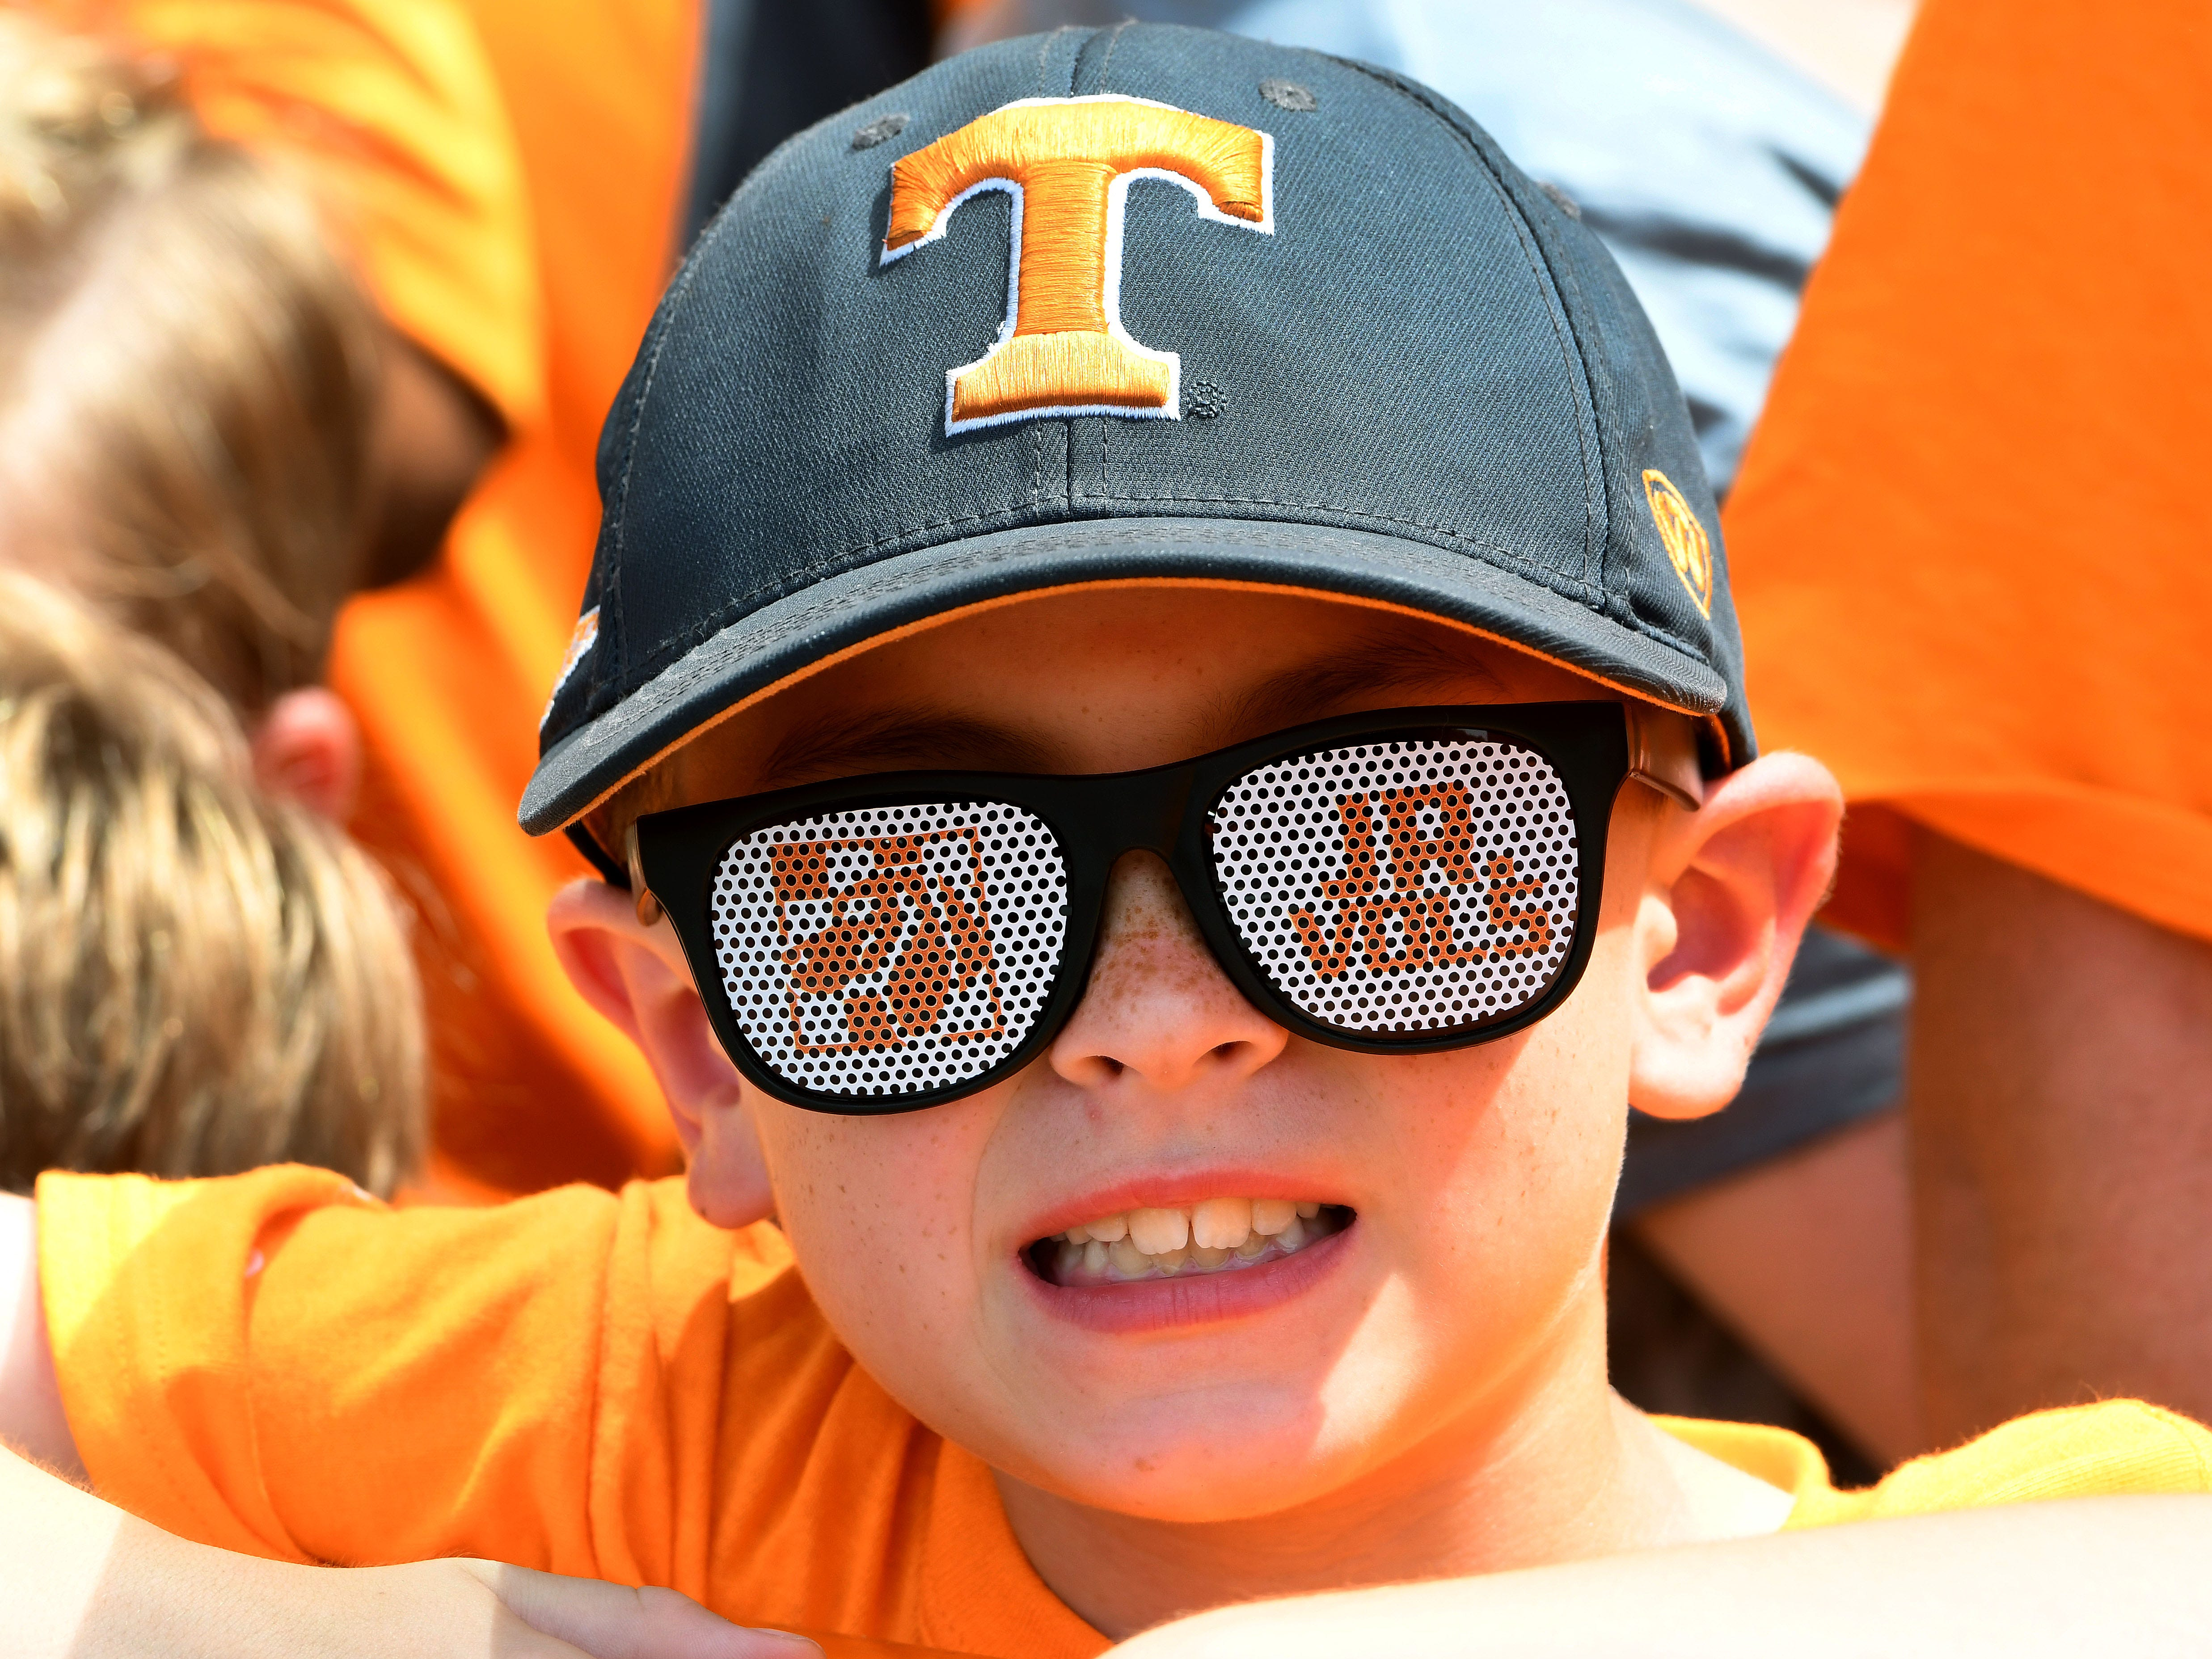 Tennessee fan waiting on the Vol Walk during pre-game activities before the game against East Tennessee State Saturday, September 8, 2018 at Neyland Stadium in Knoxville, Tenn.